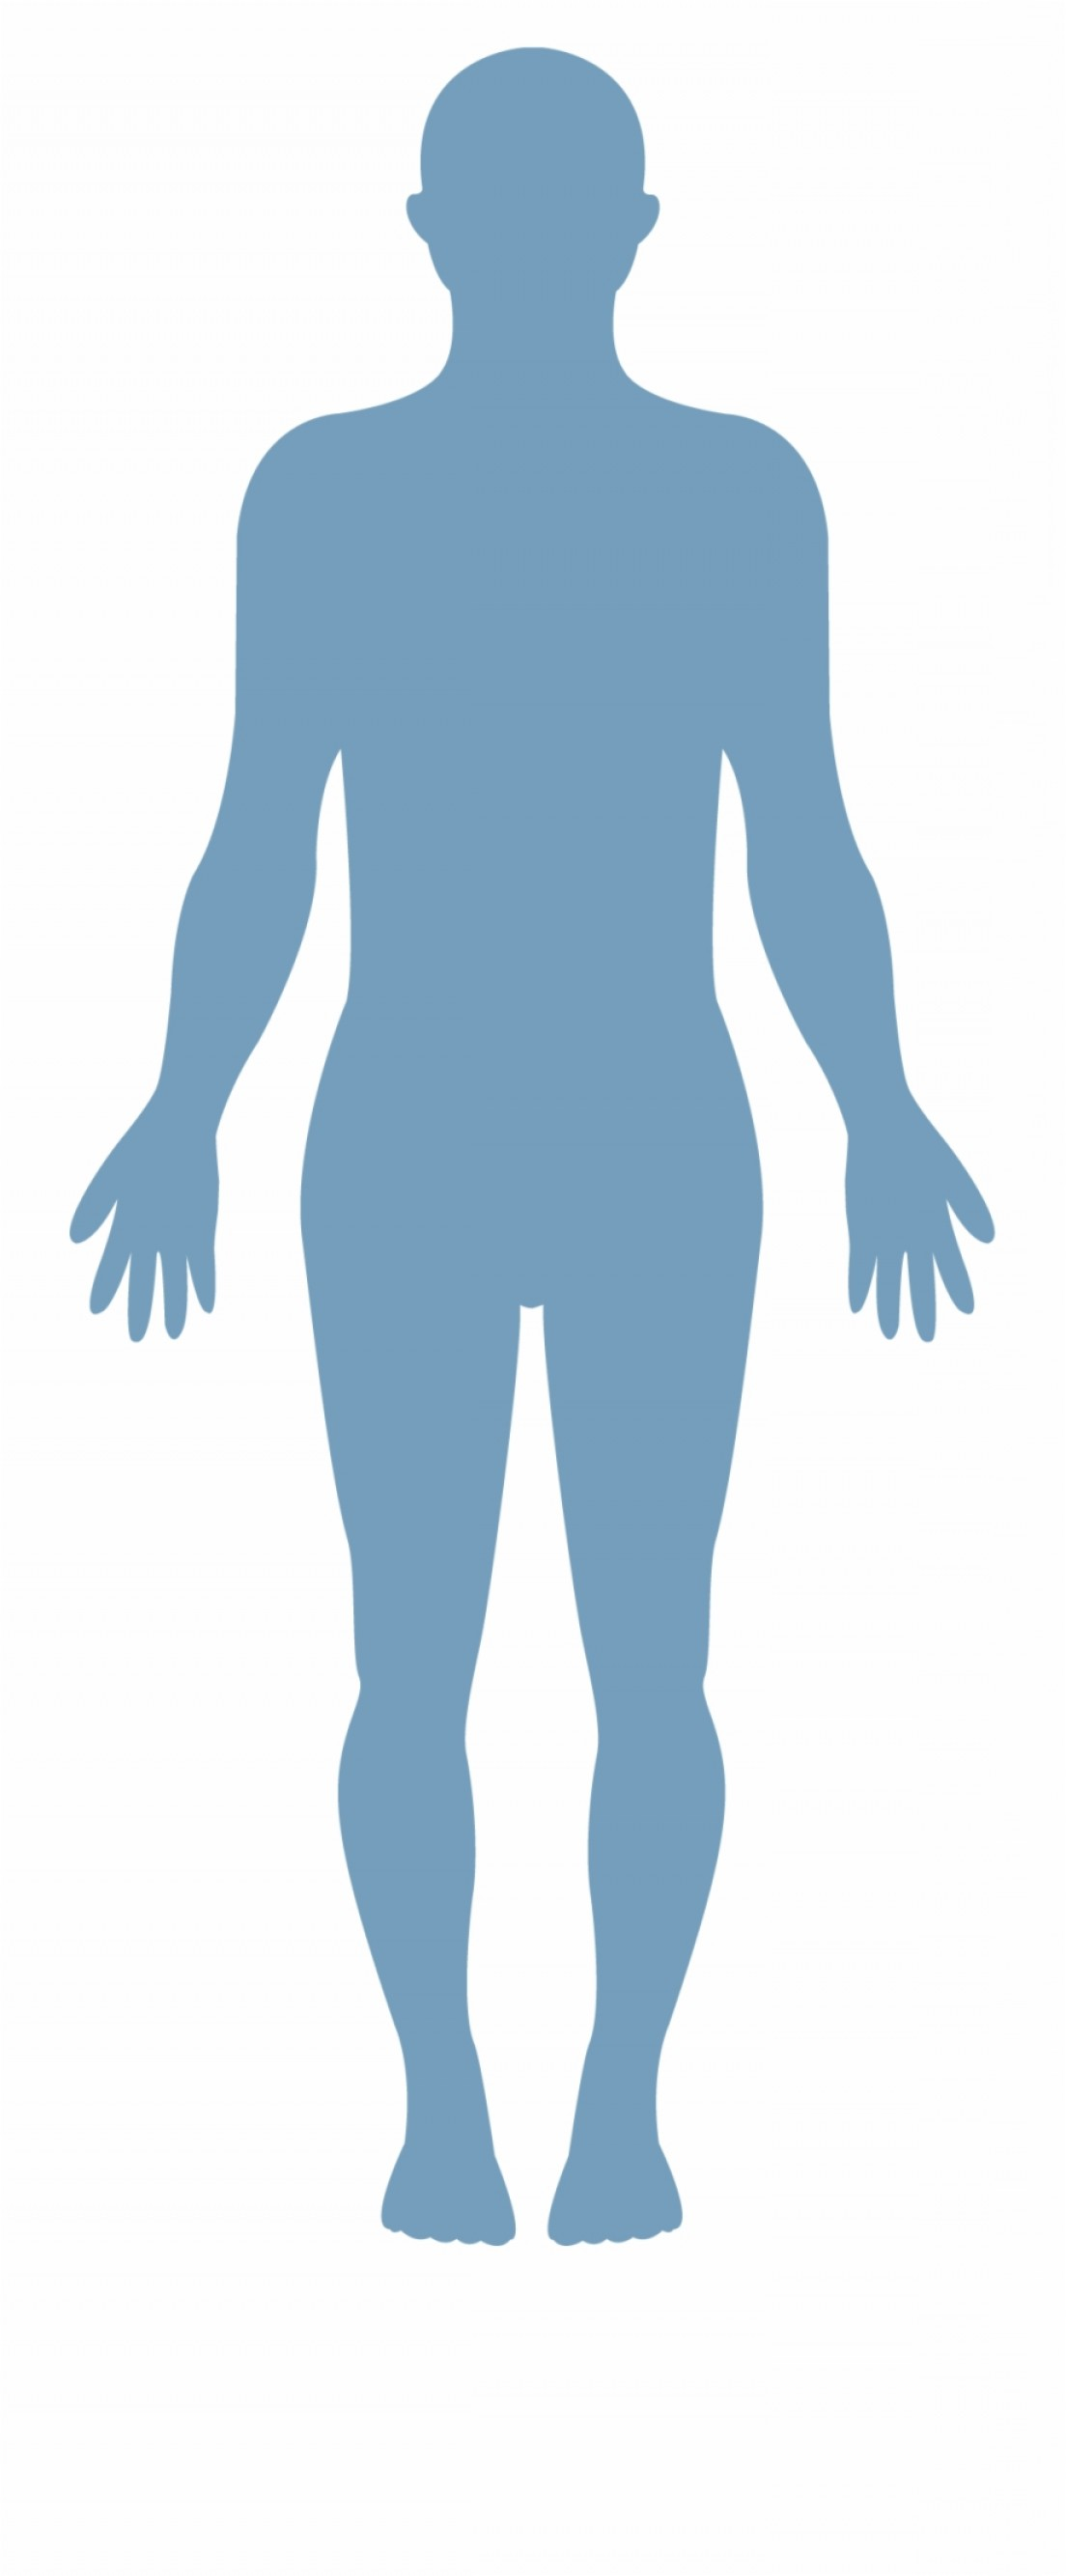 Human Body Outline Vector: Iohoxmmhuman Body Vector Transparent Healthy Body Png